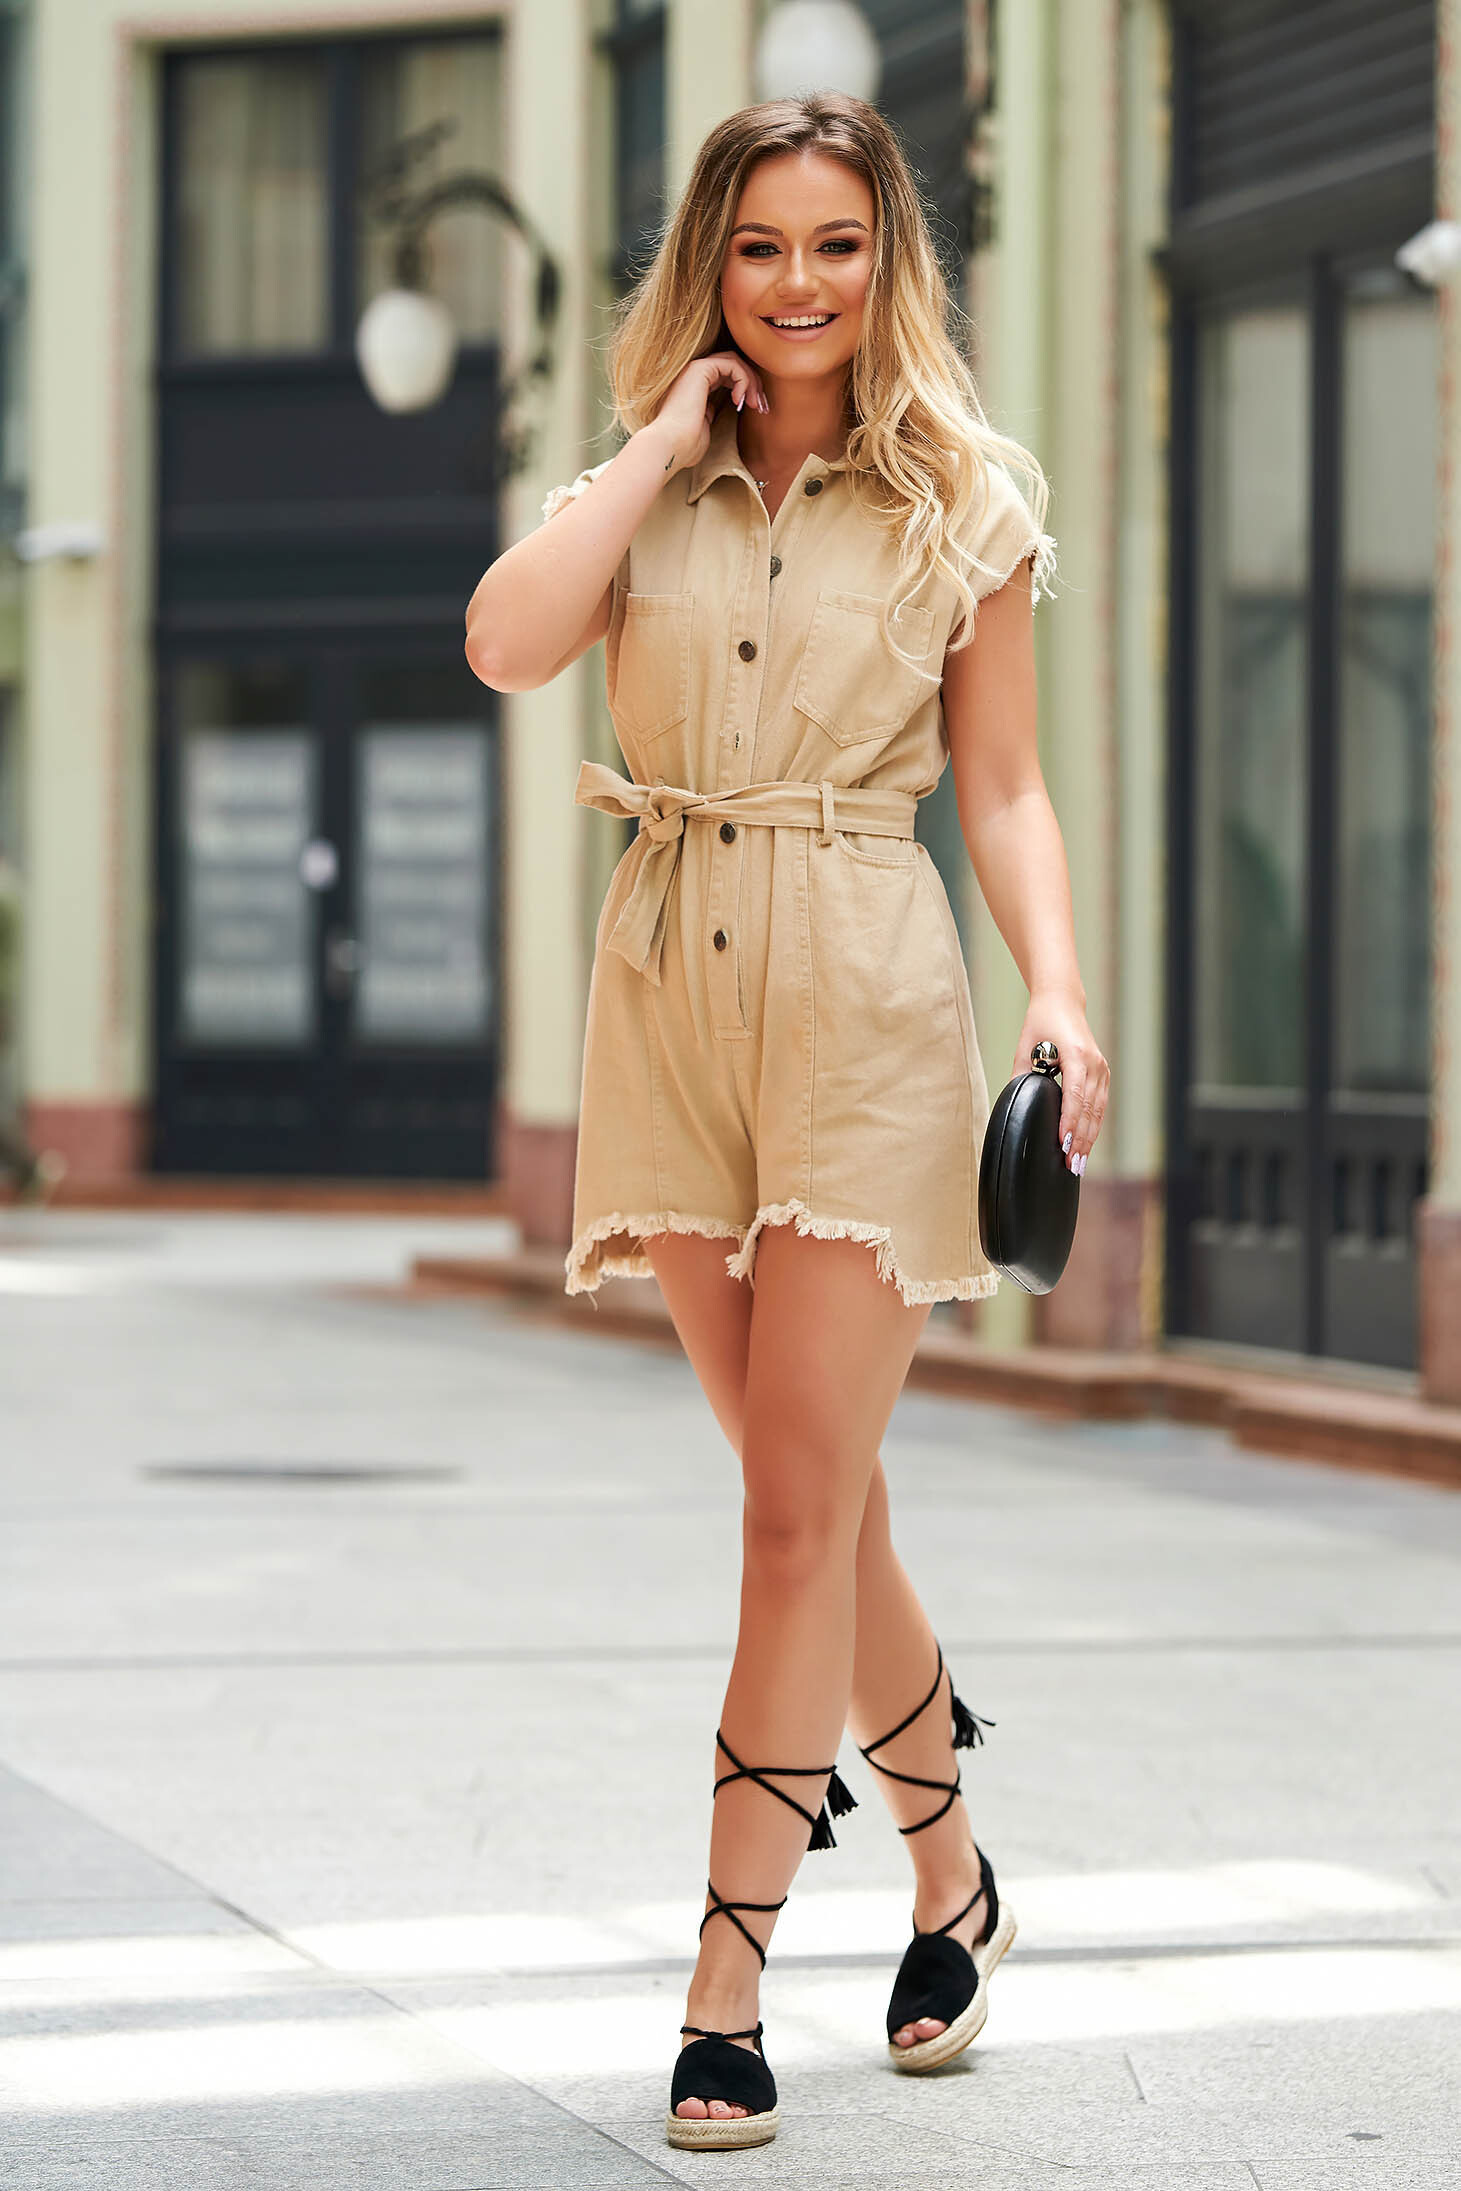 Cream jumpsuit casual flared nonelastic cotton accessorized with tied waistband